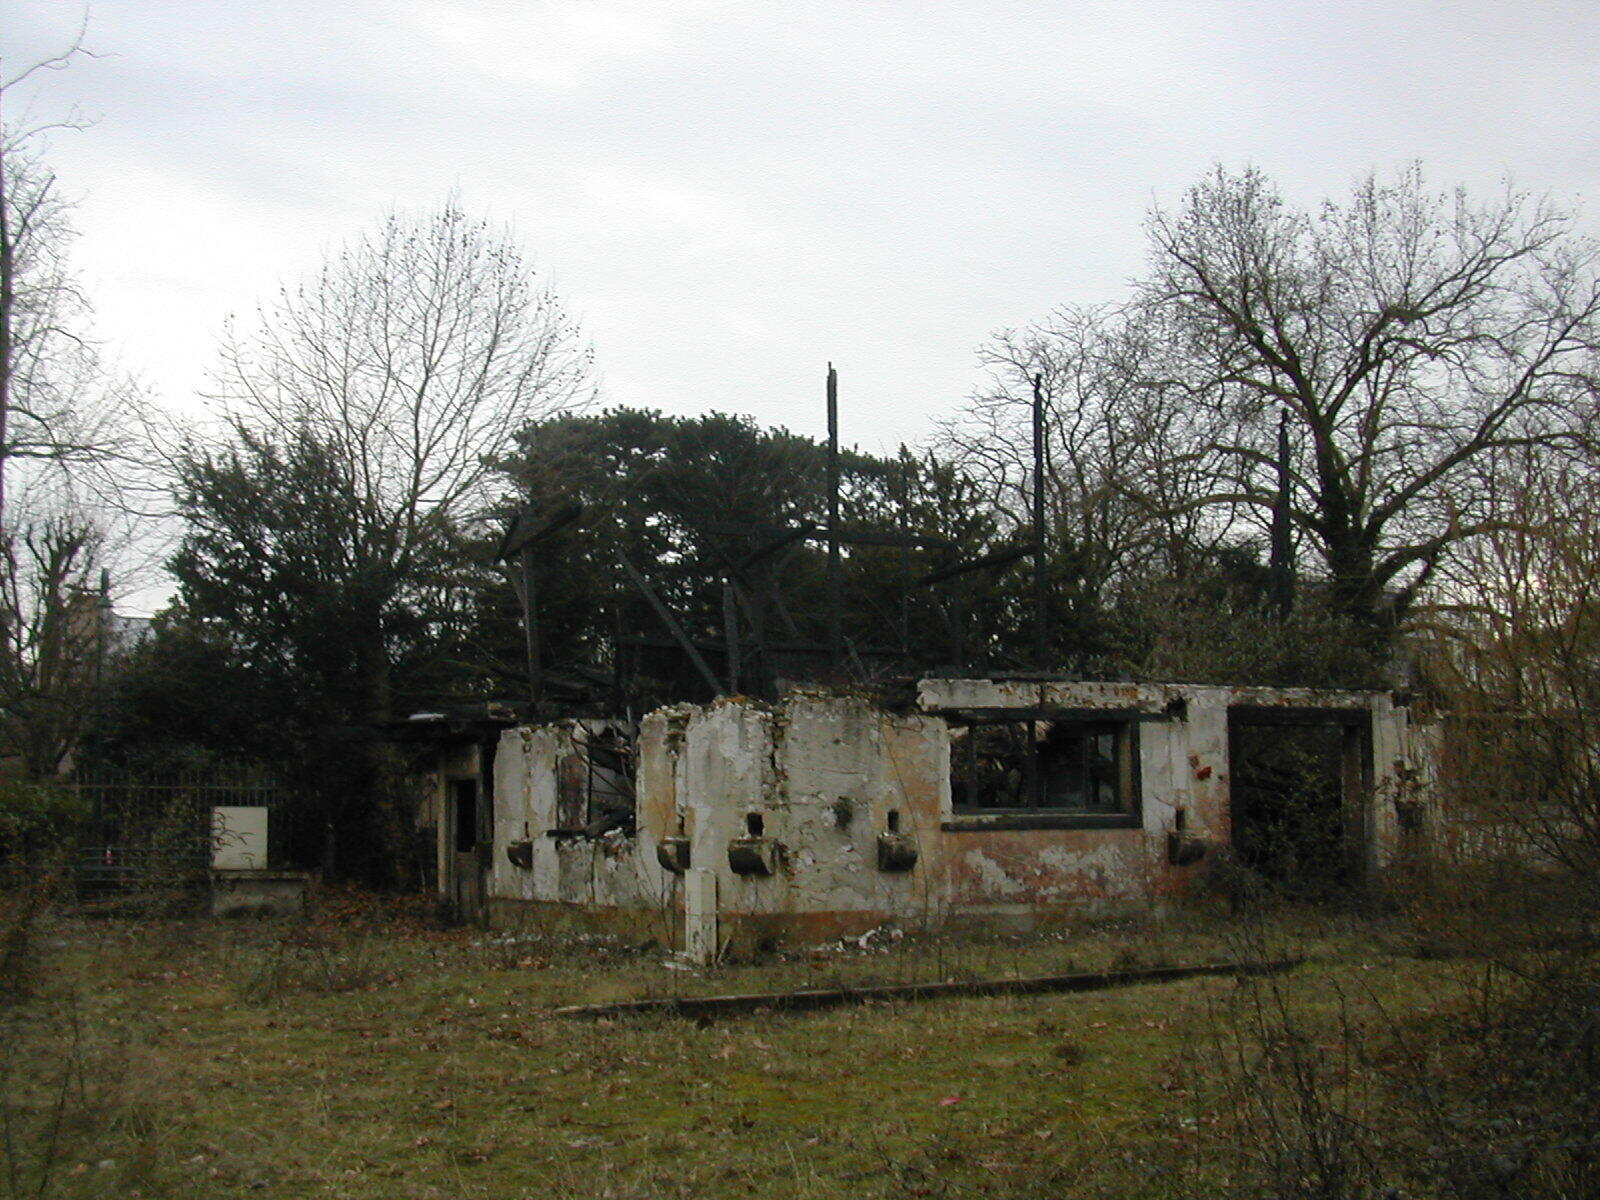 The ruins of the Congo pavilion after it was consumed in a fire